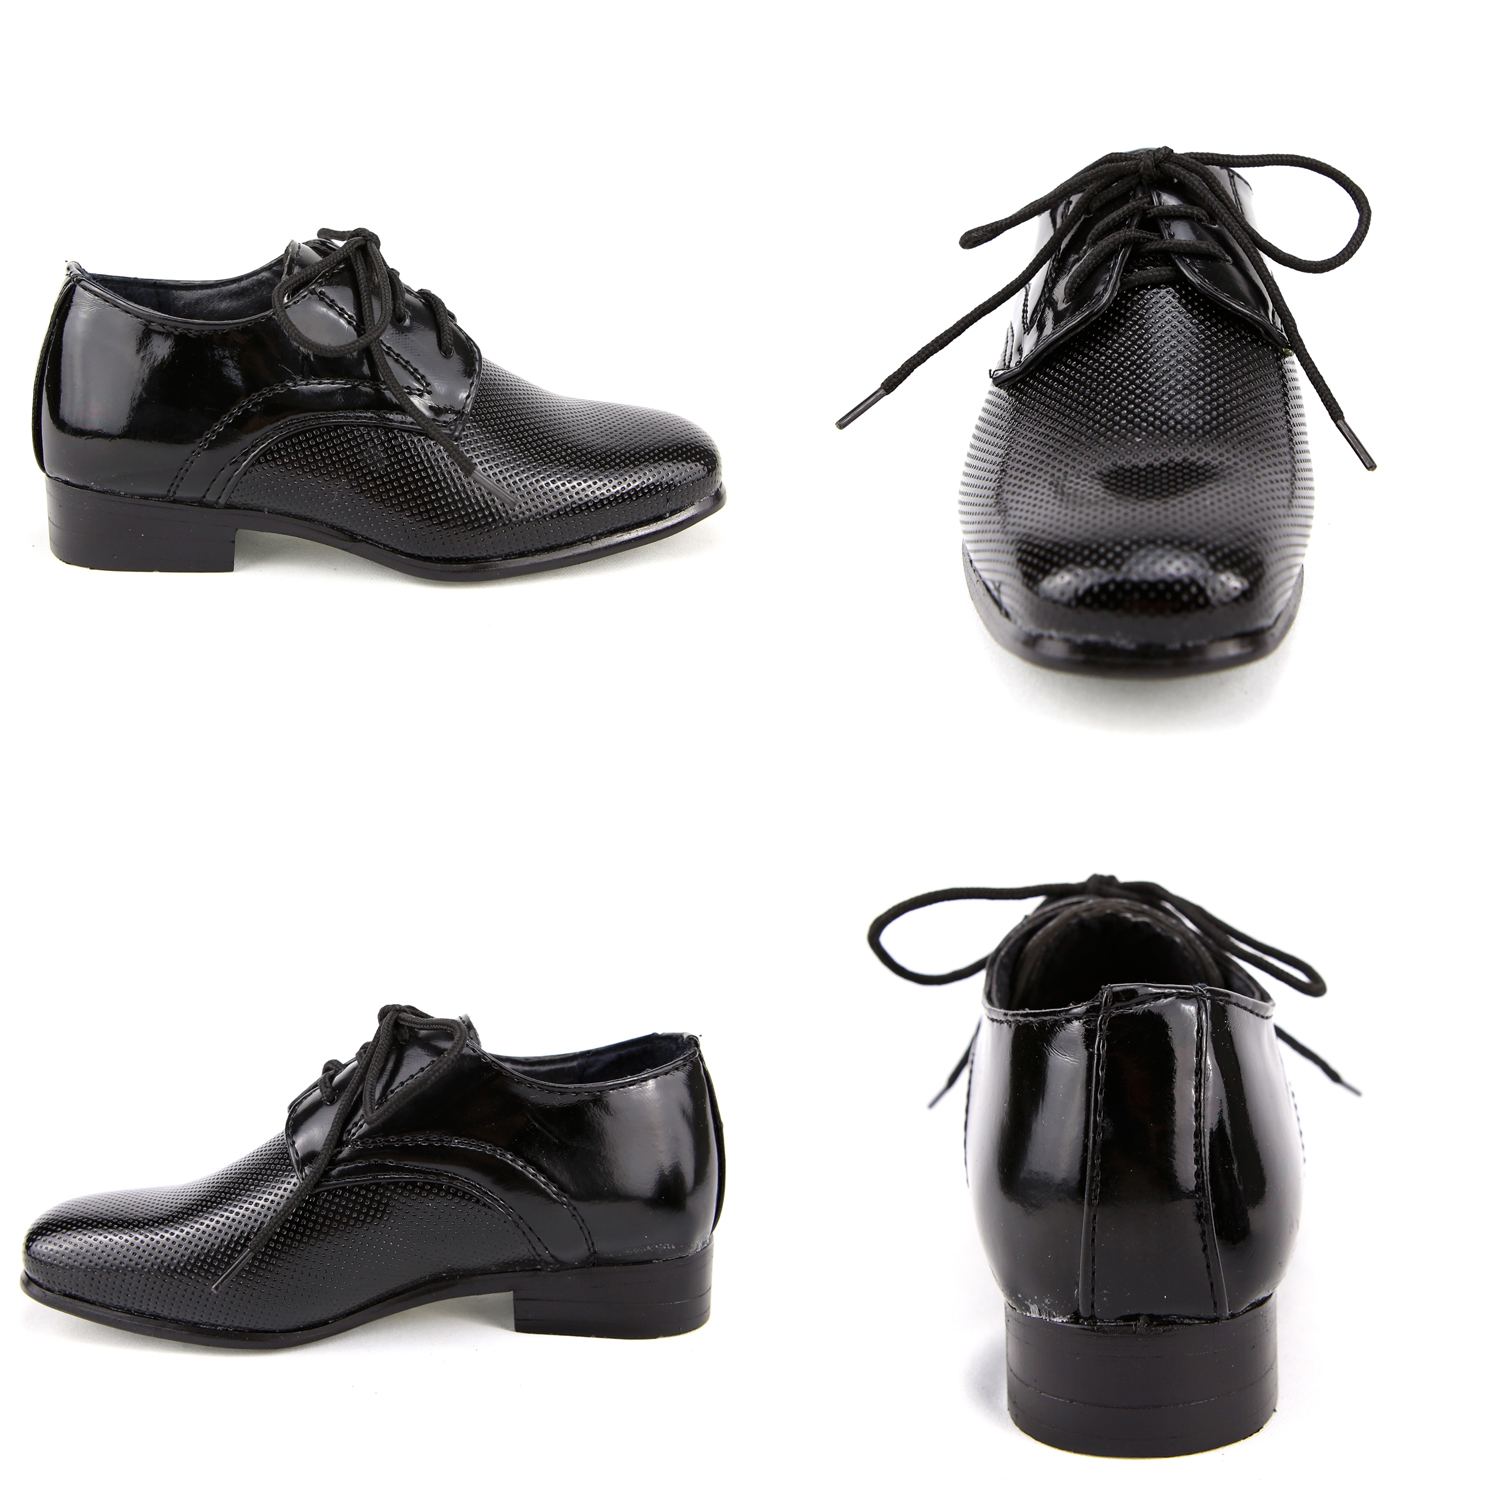 chaussure derby enfant gar on pour c r monie mariage 24 au 37 c8029 noir verni chaussures. Black Bedroom Furniture Sets. Home Design Ideas